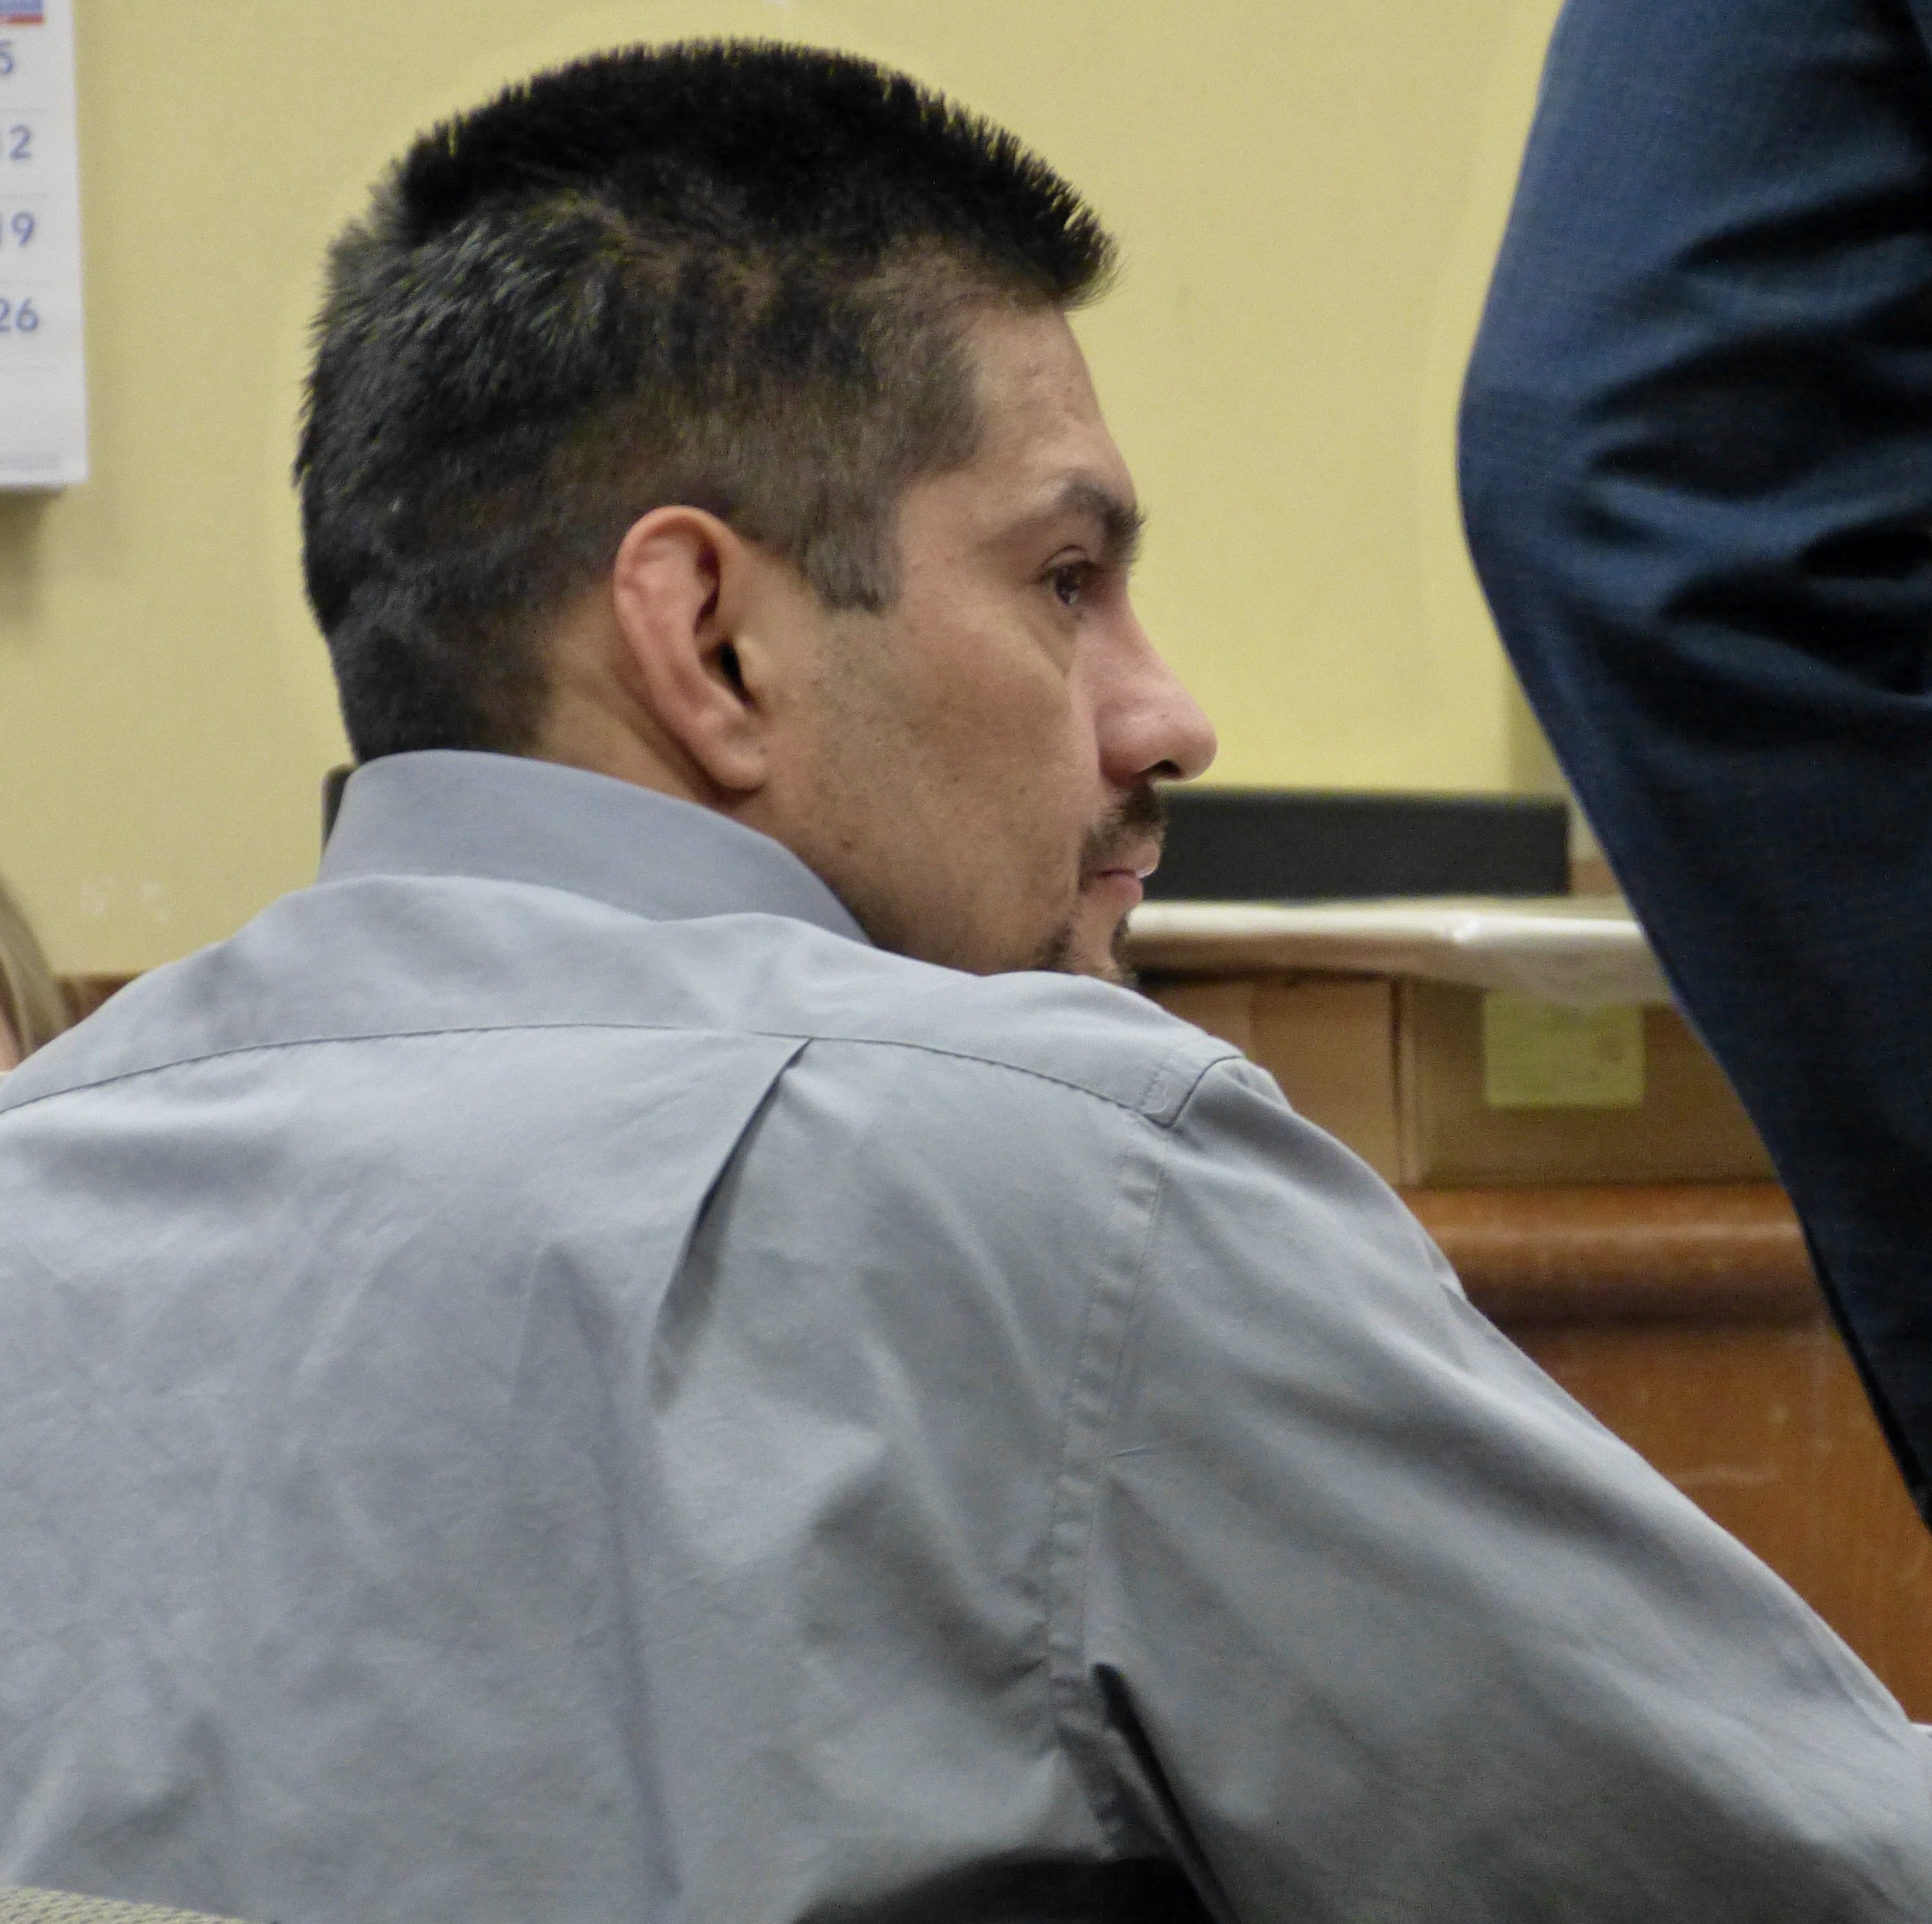 Speak your piece: Juan Venegas case proves justice system works